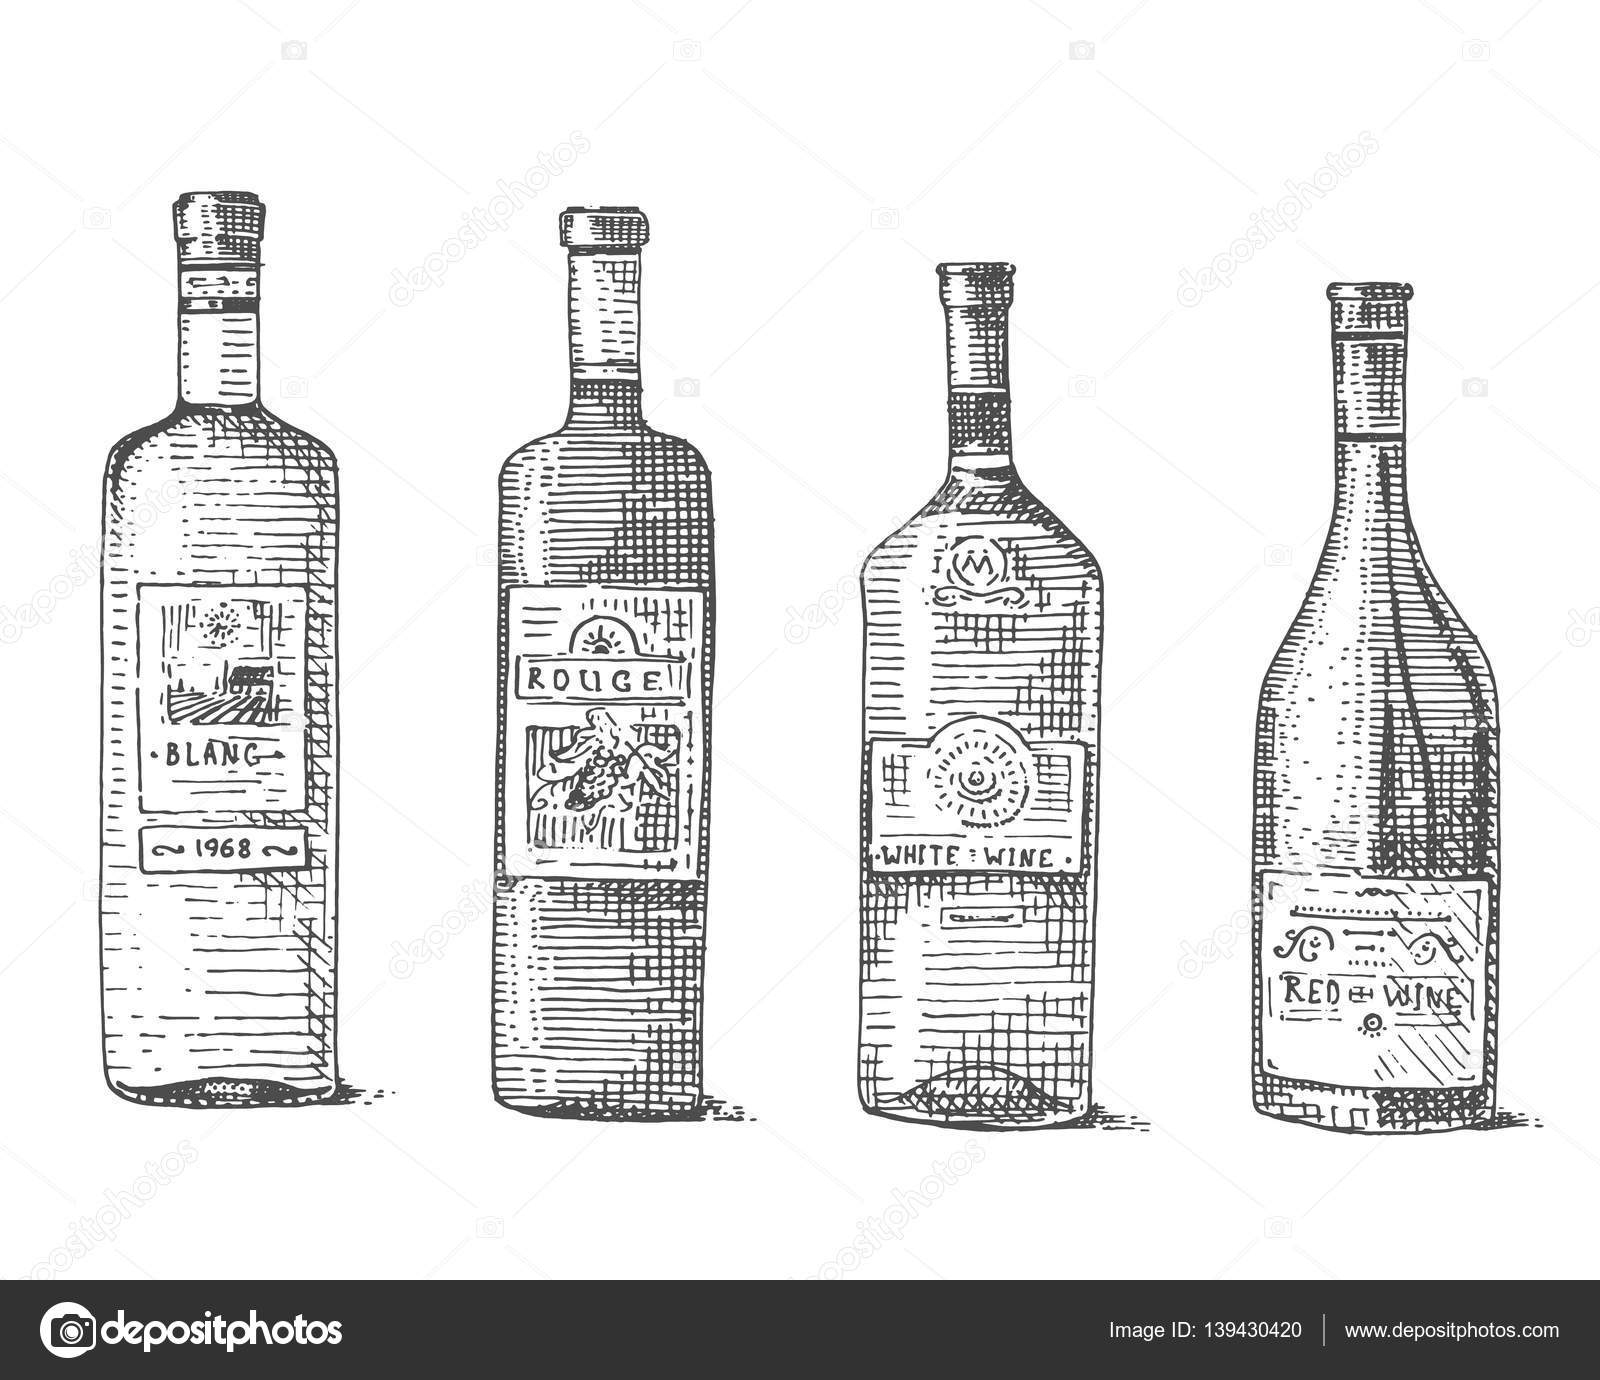 Wine Bottle Hand Drawn Engraved Old Looking Vintage Illustration Stock Vector